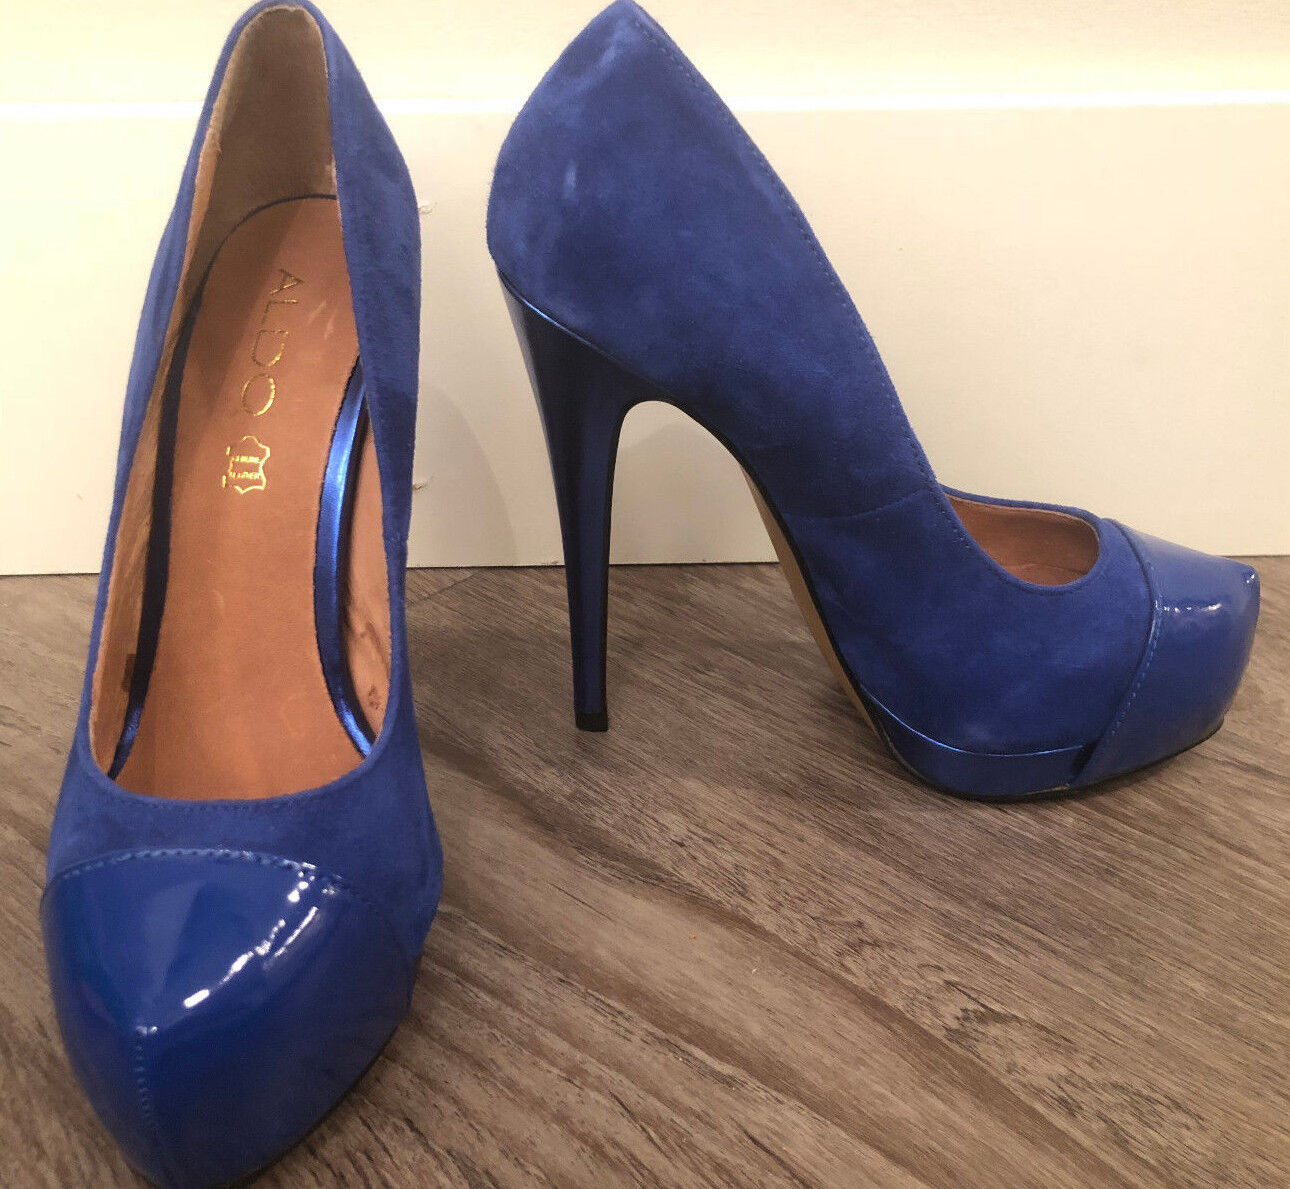 ALDO Women's Royal Bright bluee Patent and Suede High Stiletto Heel Size 6.5